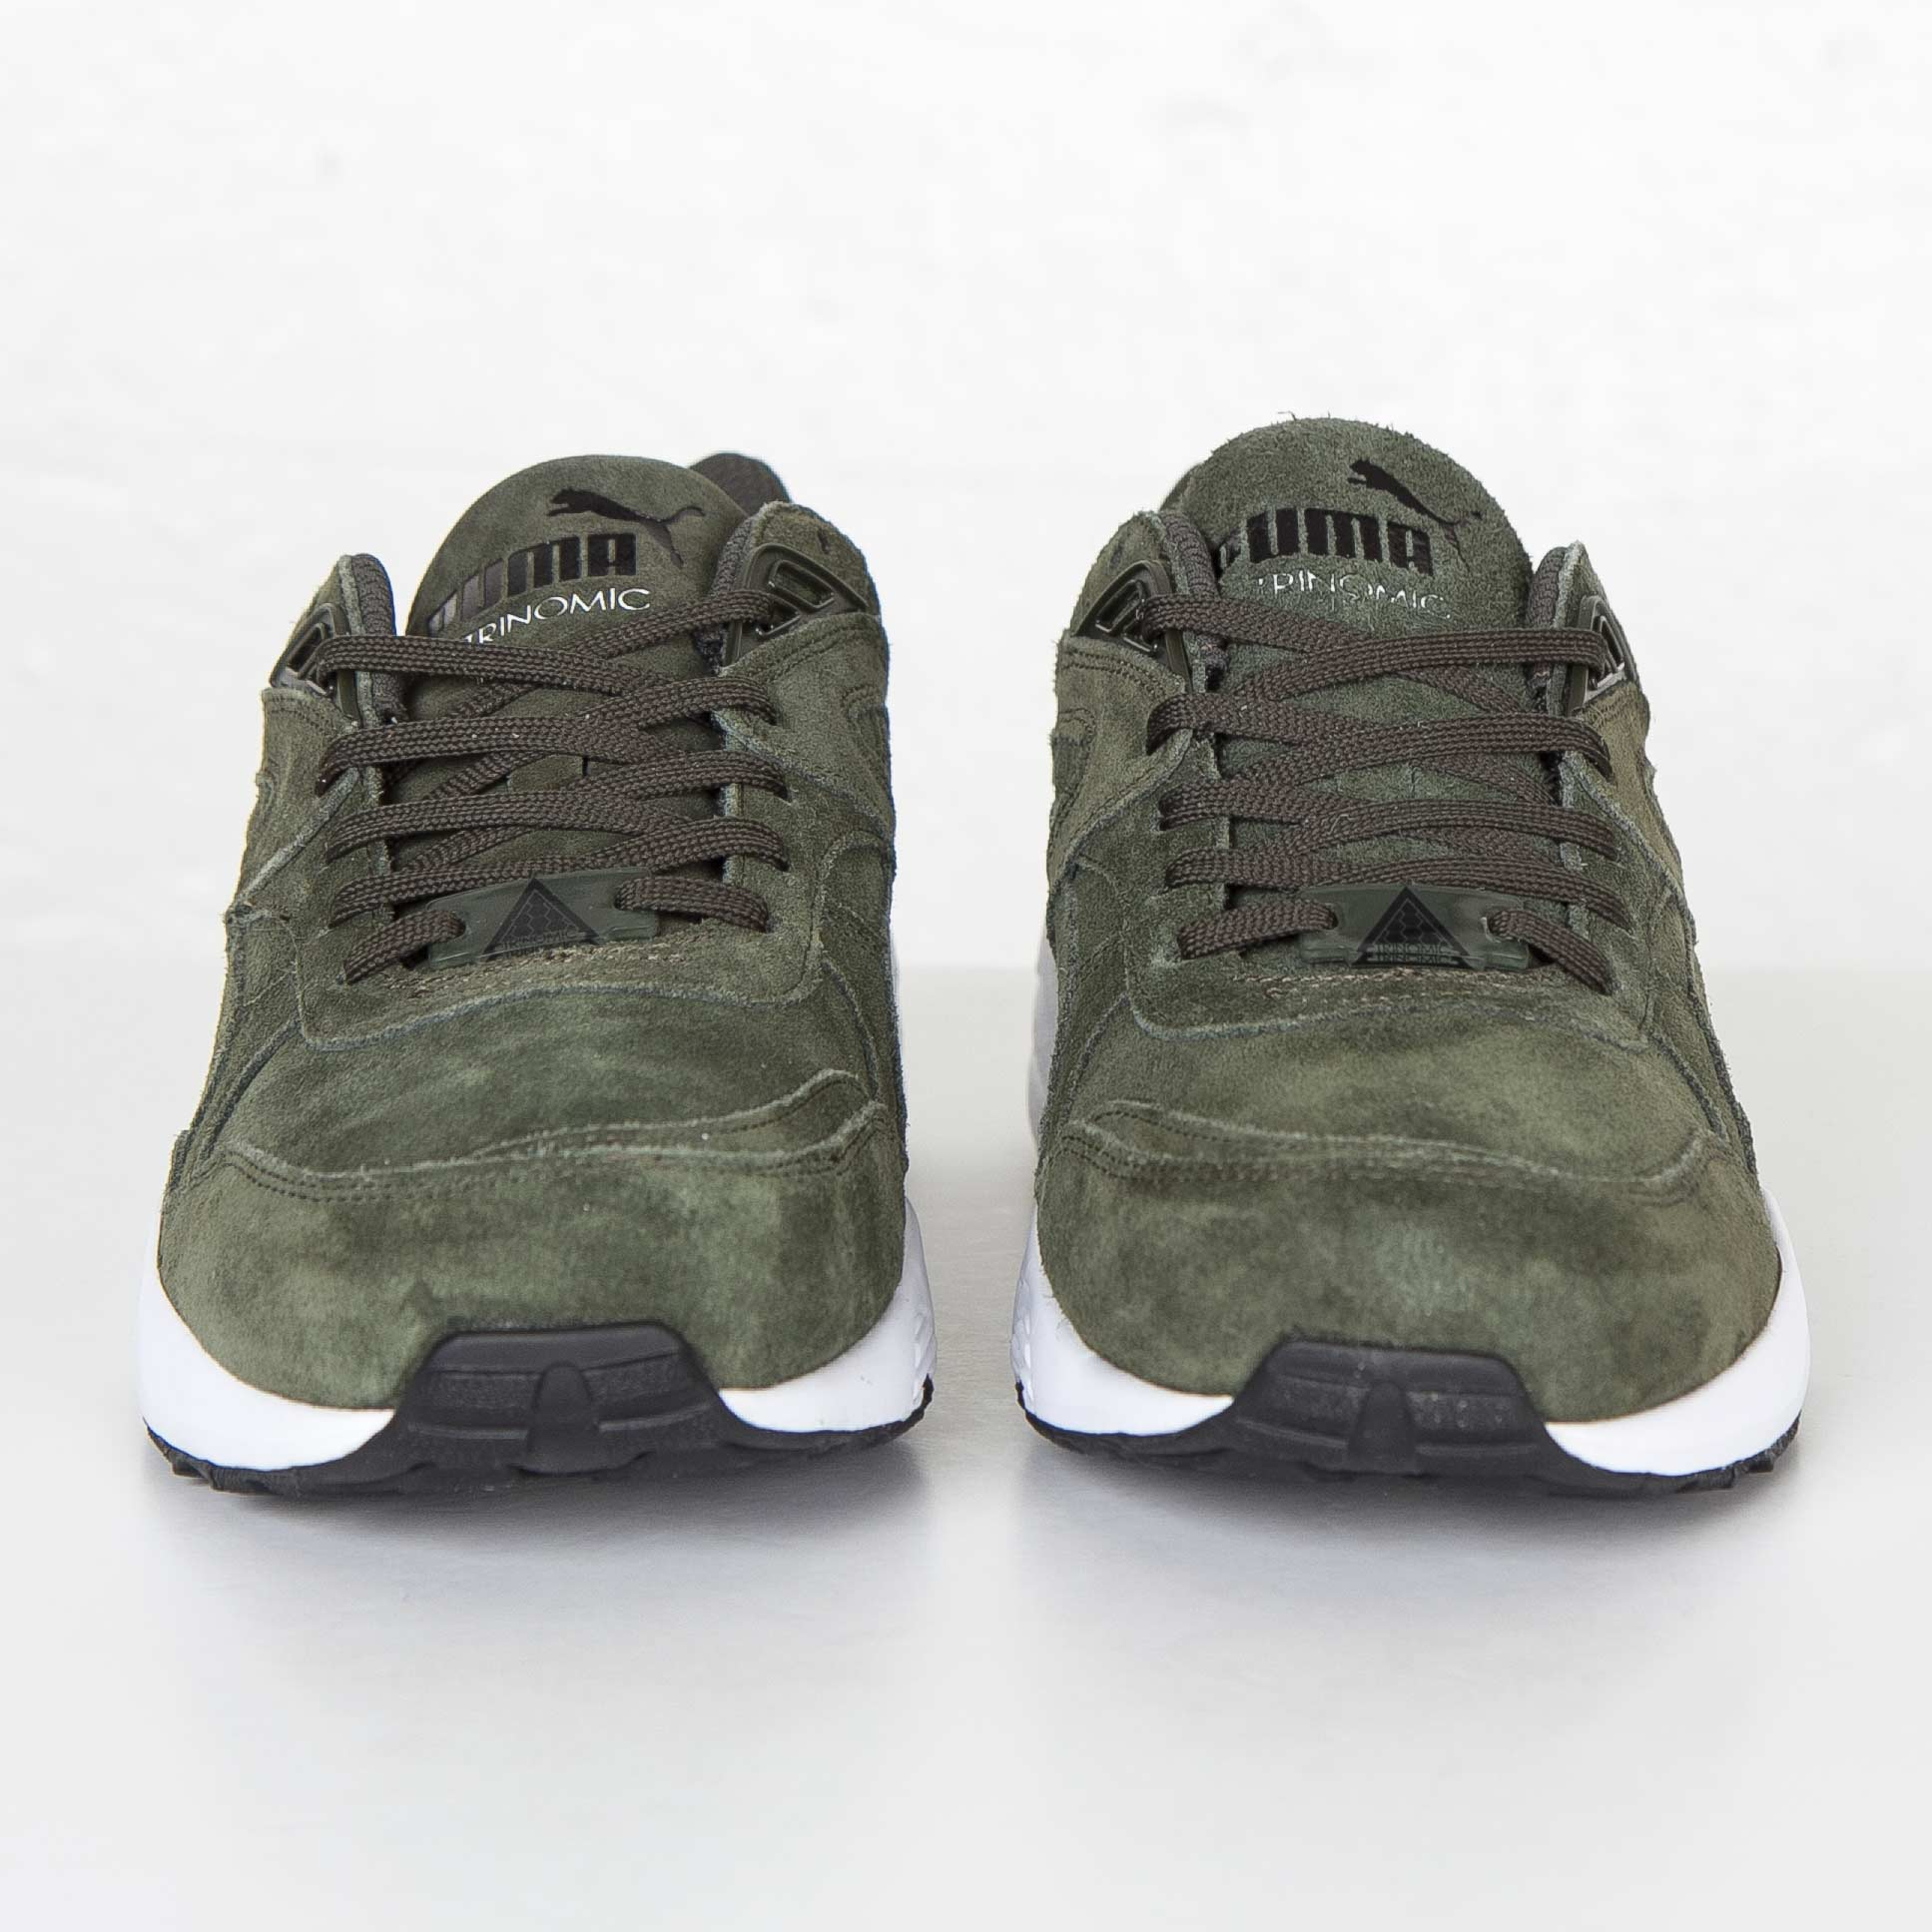 outlet store 718b8 be533 Puma R698 Allover Suede - 359392-04 - Sneakersnstuff ...